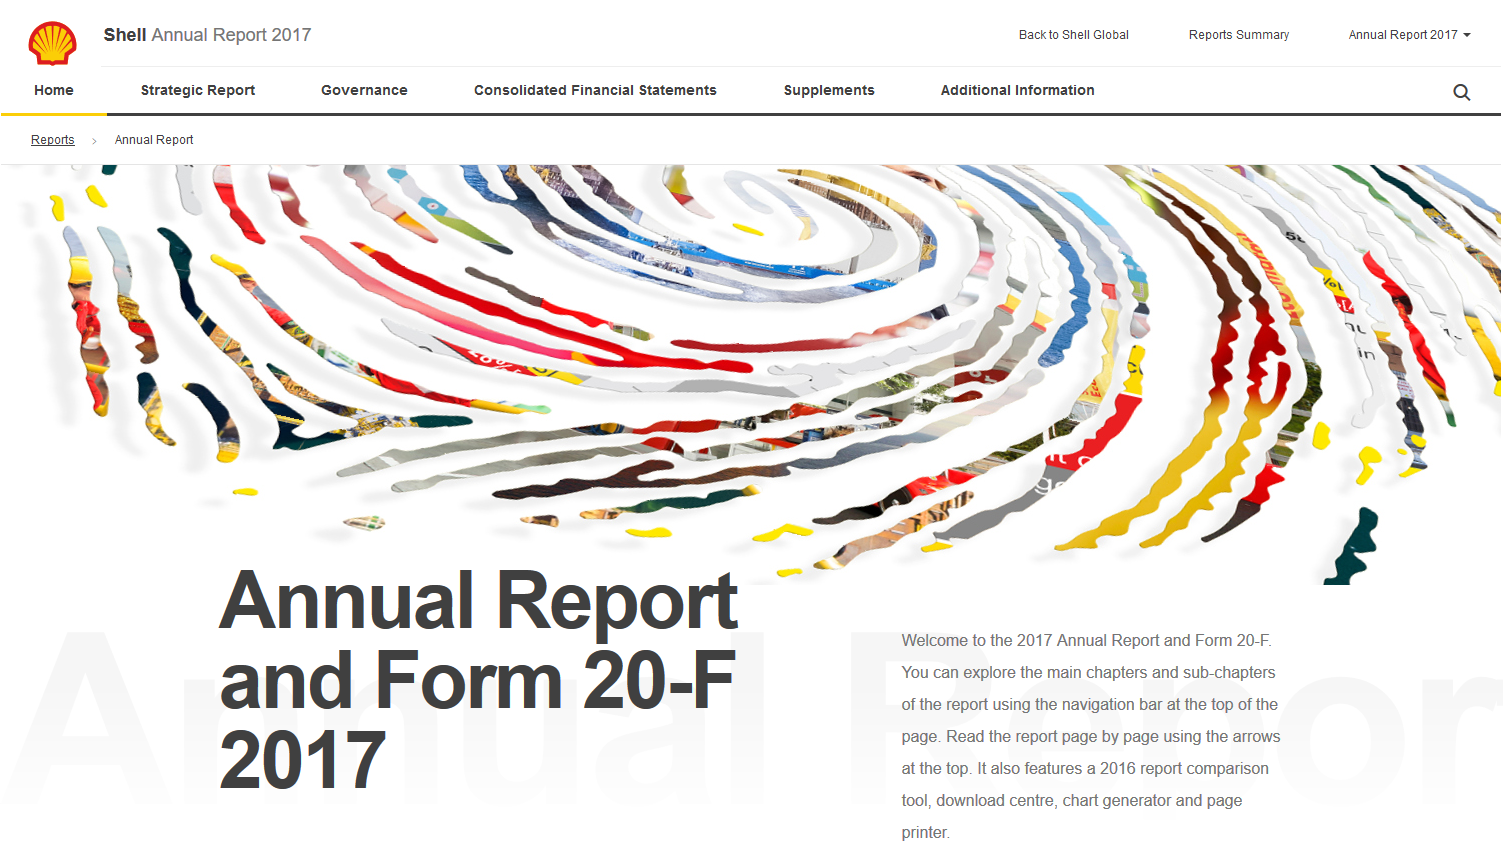 Shell Annual Report 2017 - Home bae11bd148